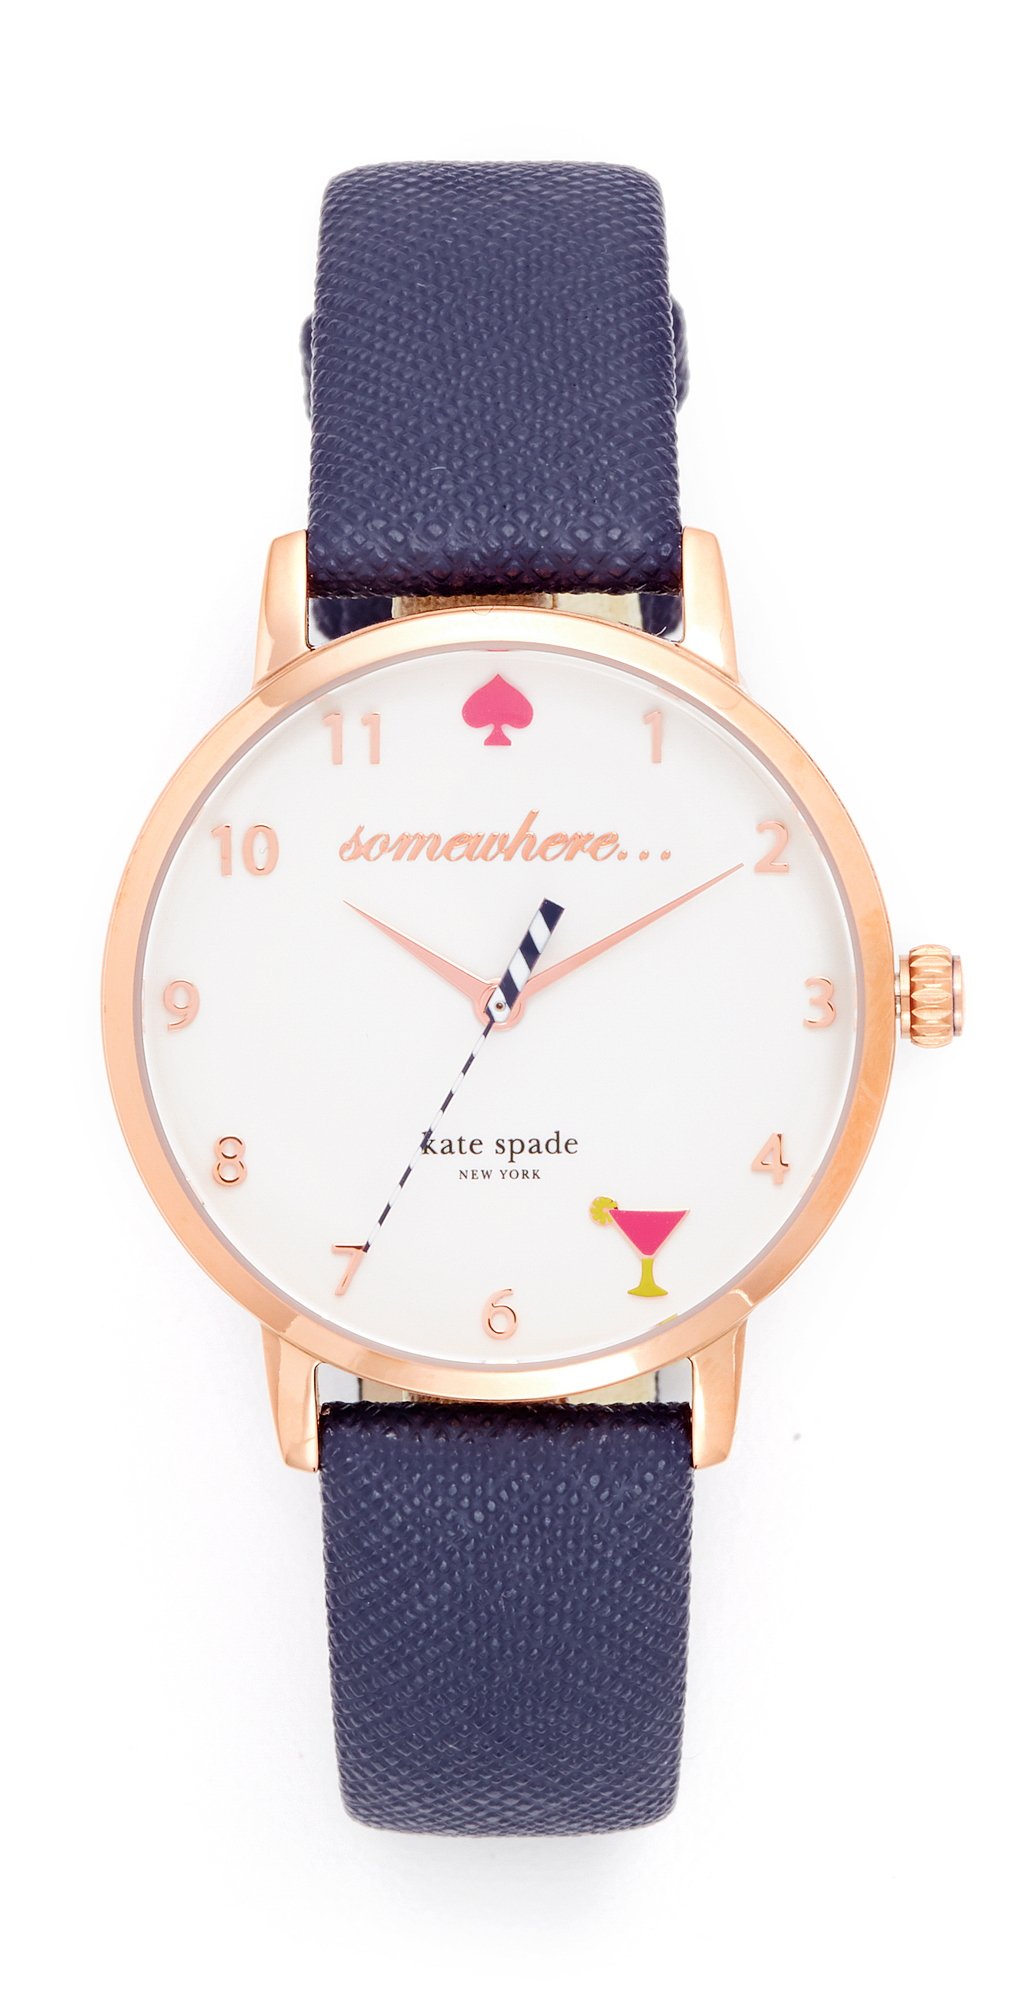 Metro Novelty 5 O'Clock Watch Kate Spade New York